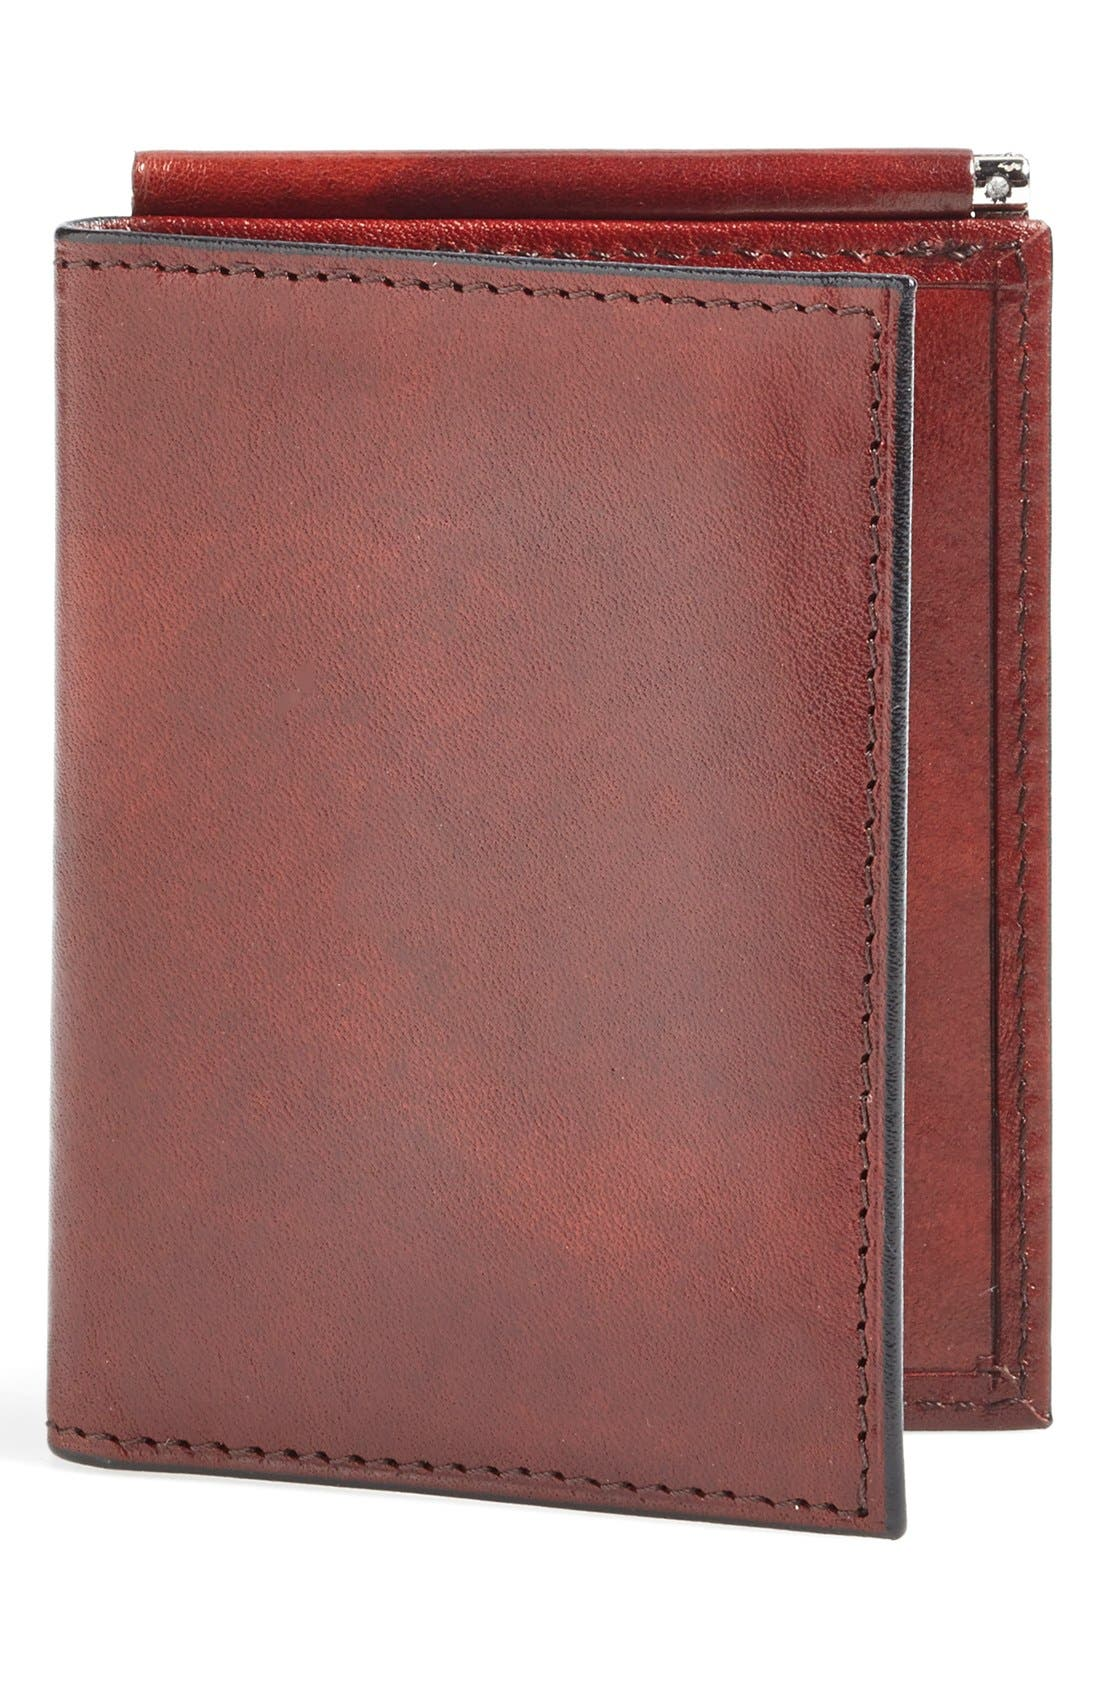 Old Leather Money Clip Wallet